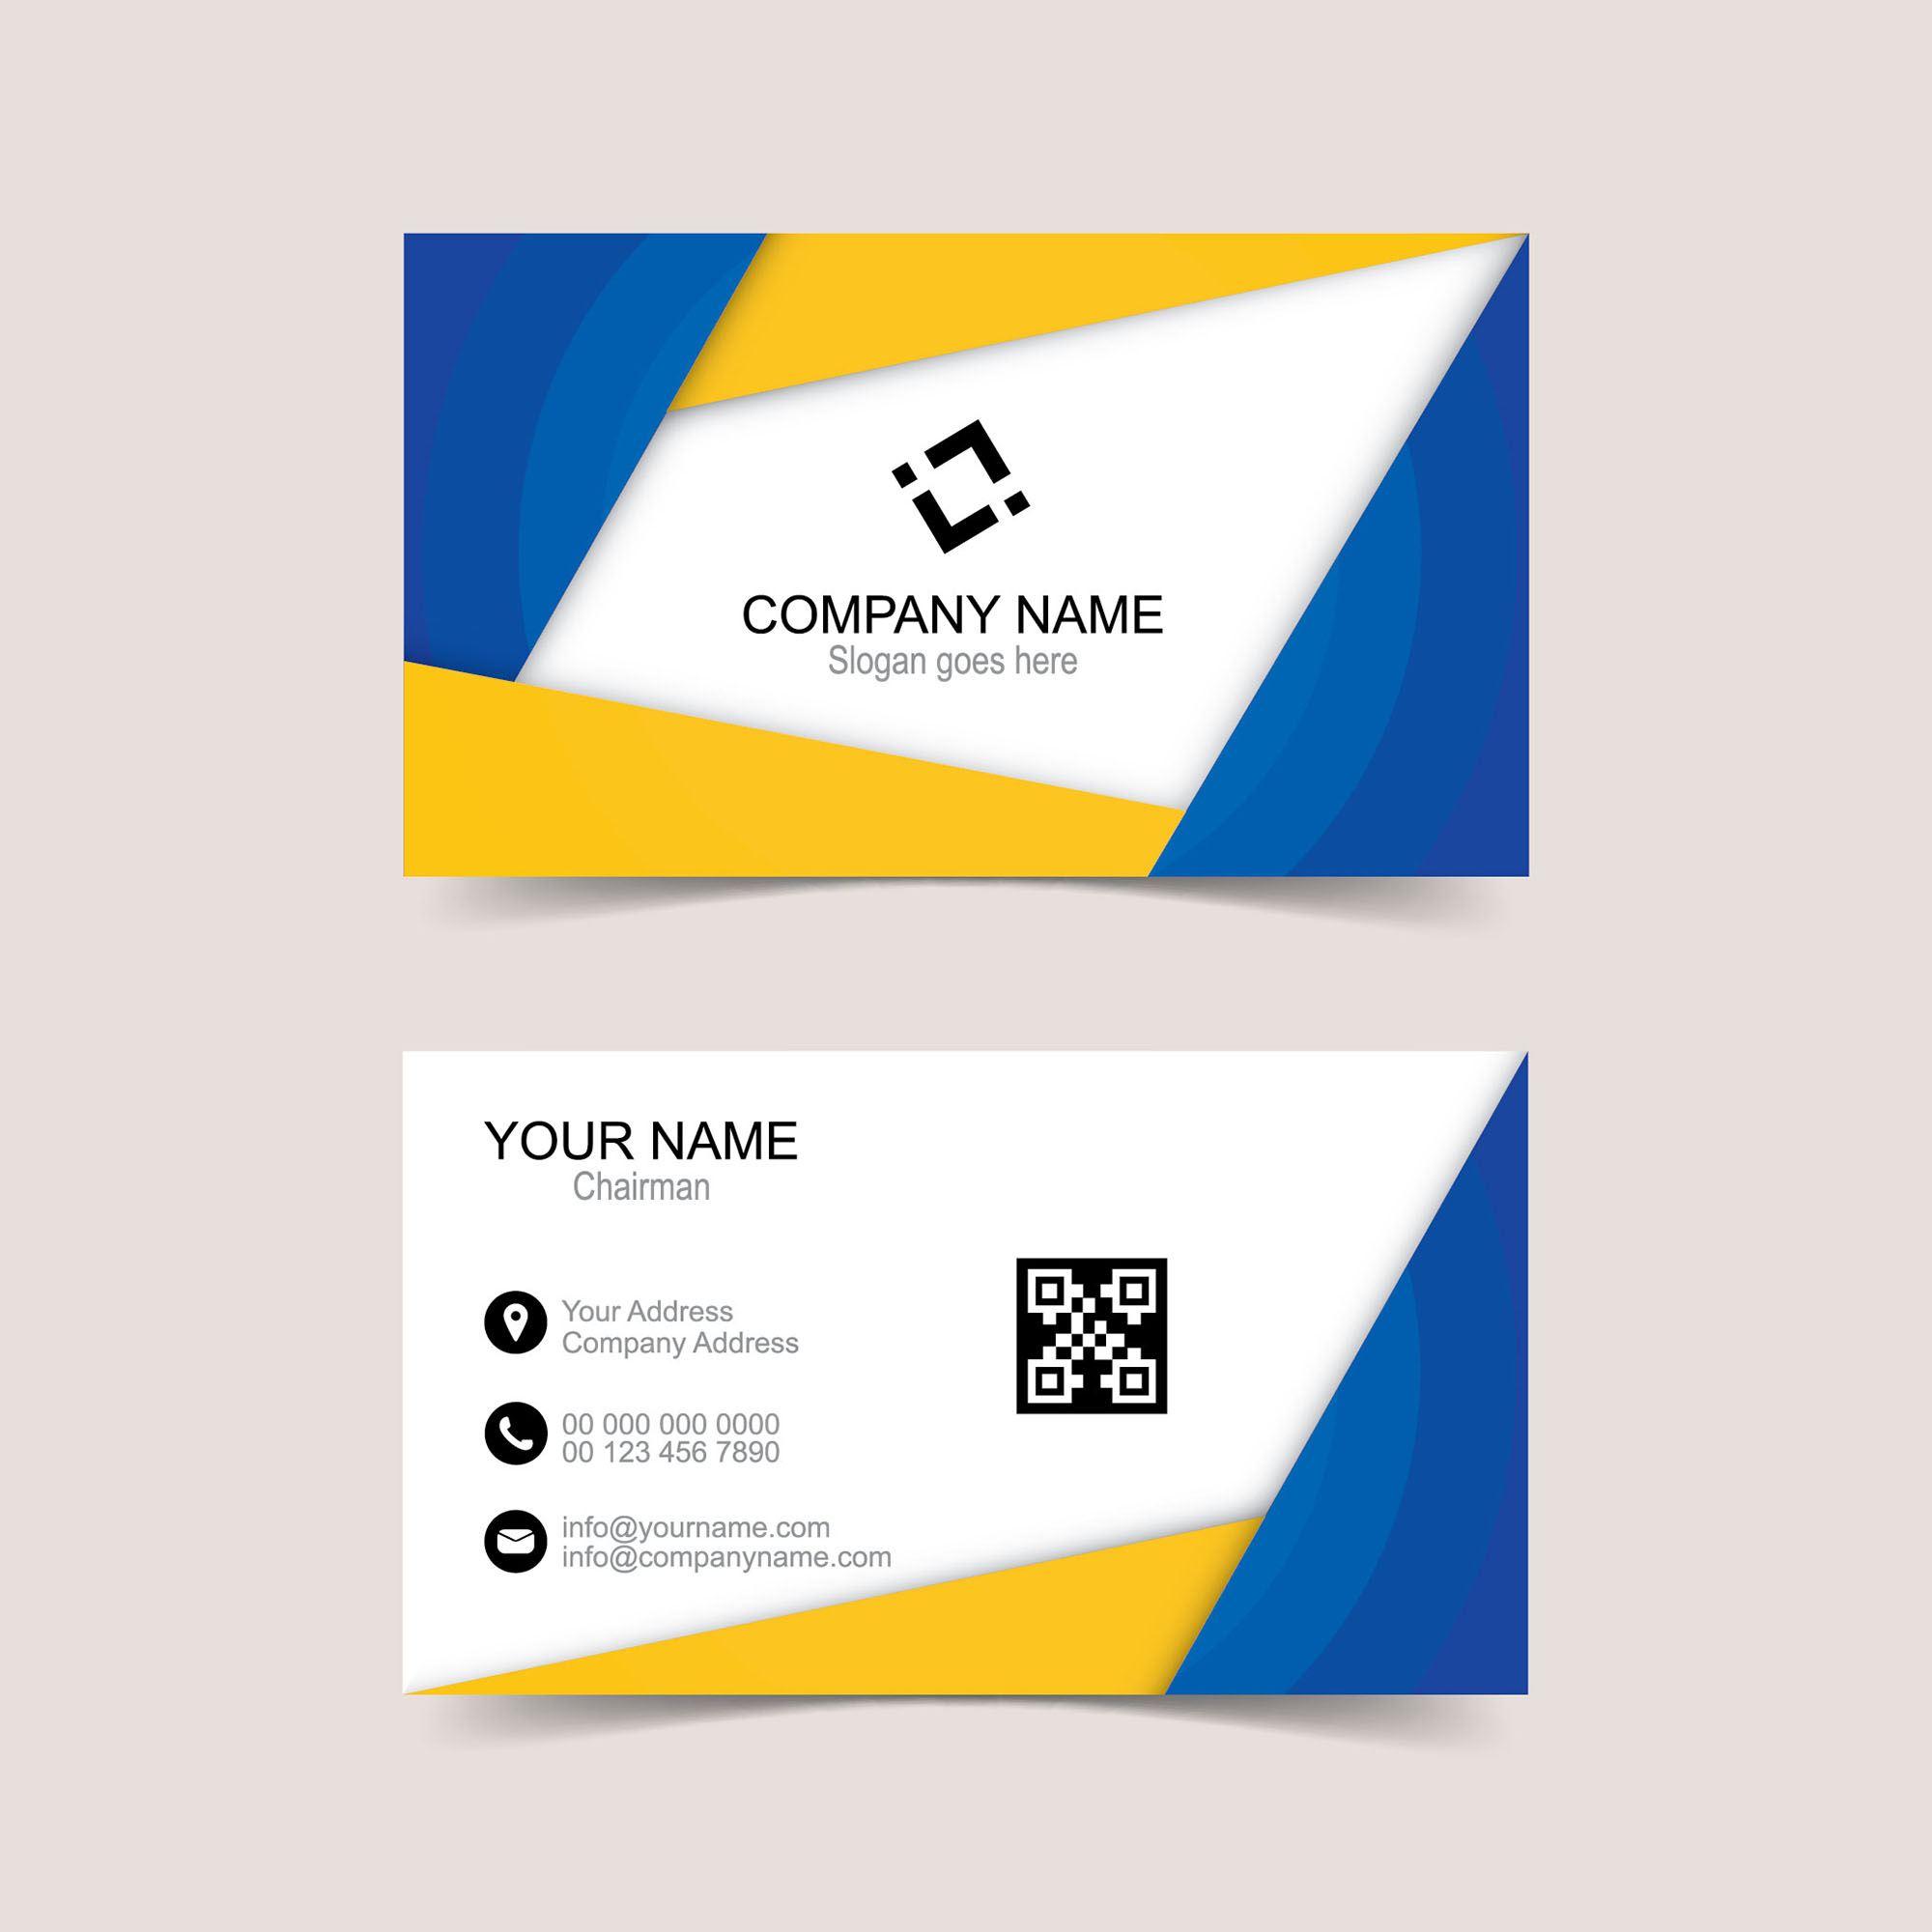 Vector creative business card template free download wisxi business card business cards business card design business card template design templates wajeb Images